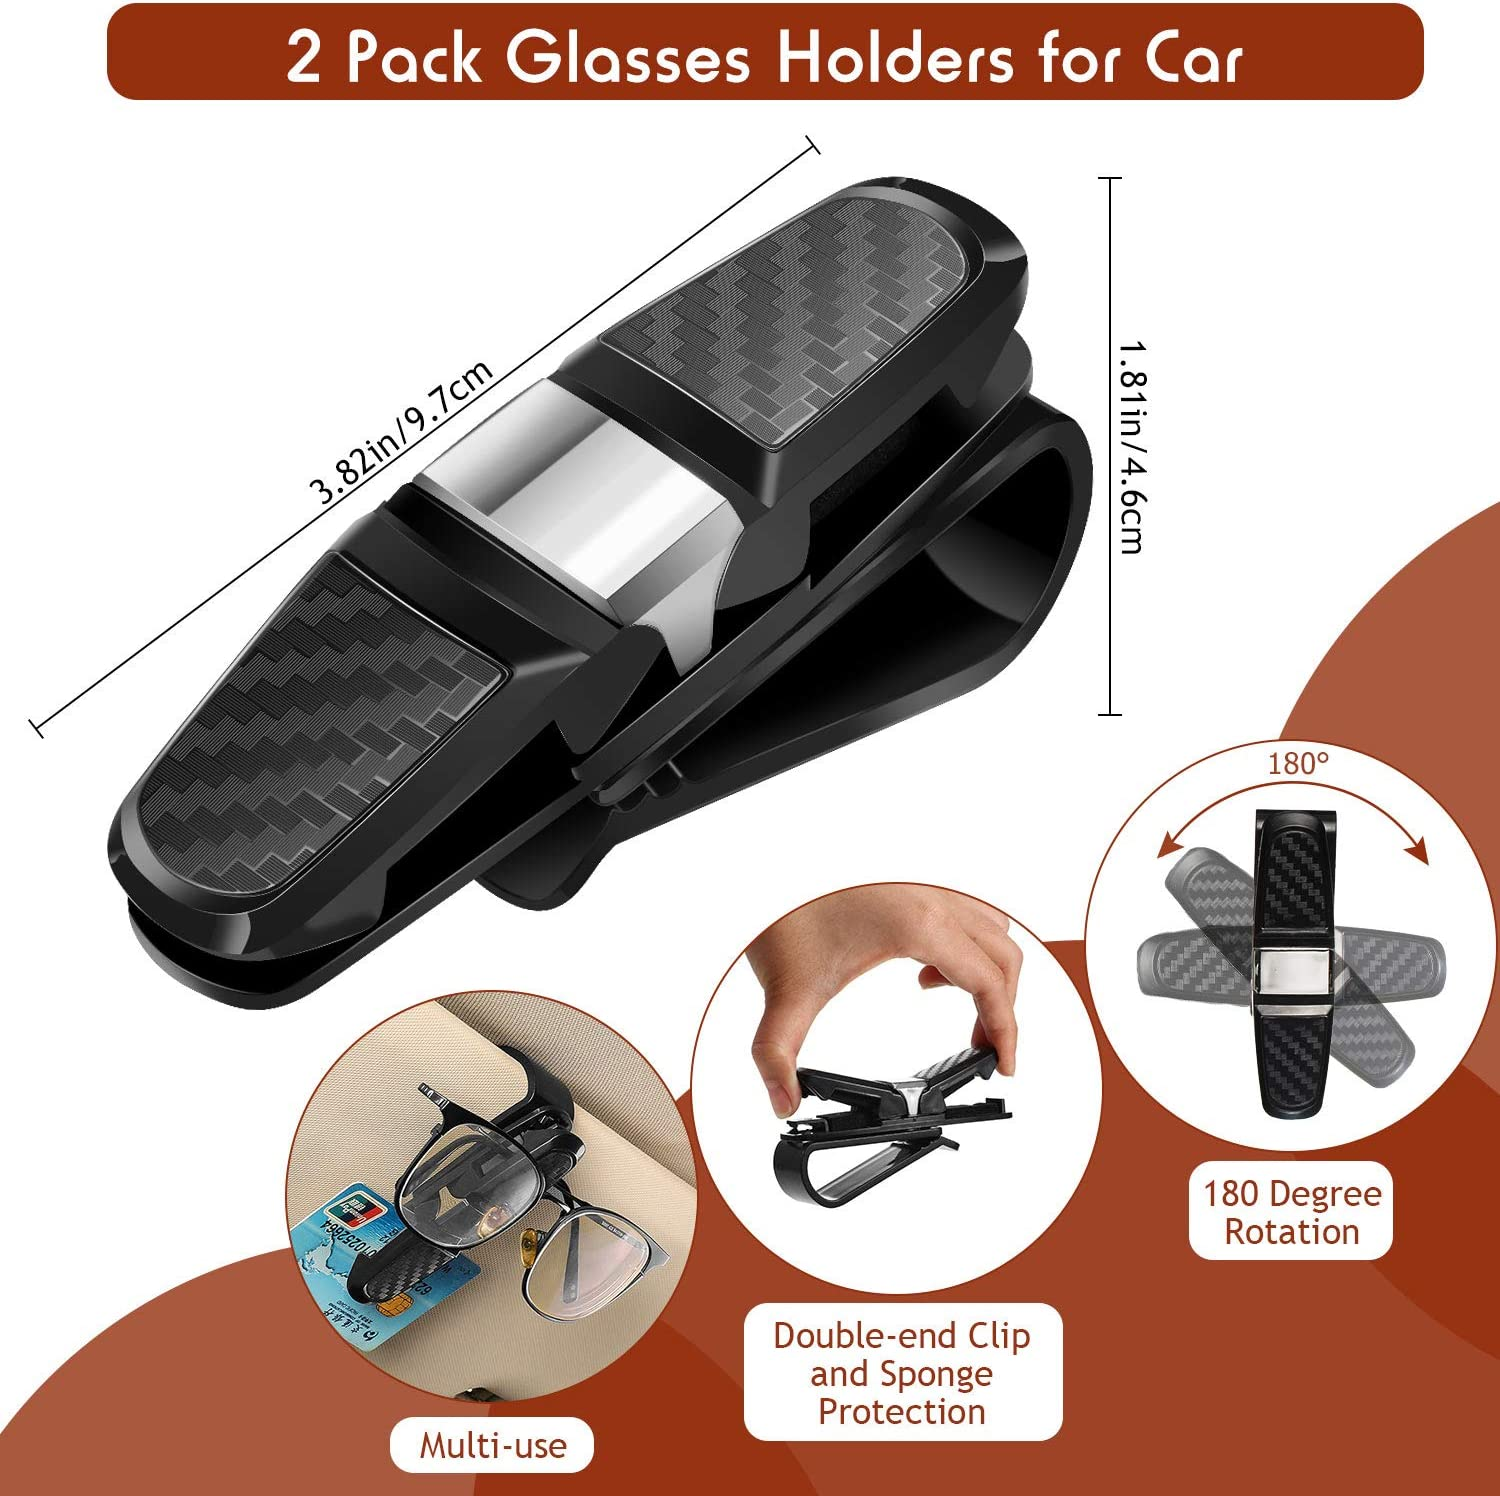 Wallet 2 Pieces Car Seat Organizer Seat Gap Filler with Dual USB Charging Car Console Side Organizer with 2 Pieces Sunglasses Holder Clips and 4 Pieces Hooks for Cellphone Cup and Various Cards